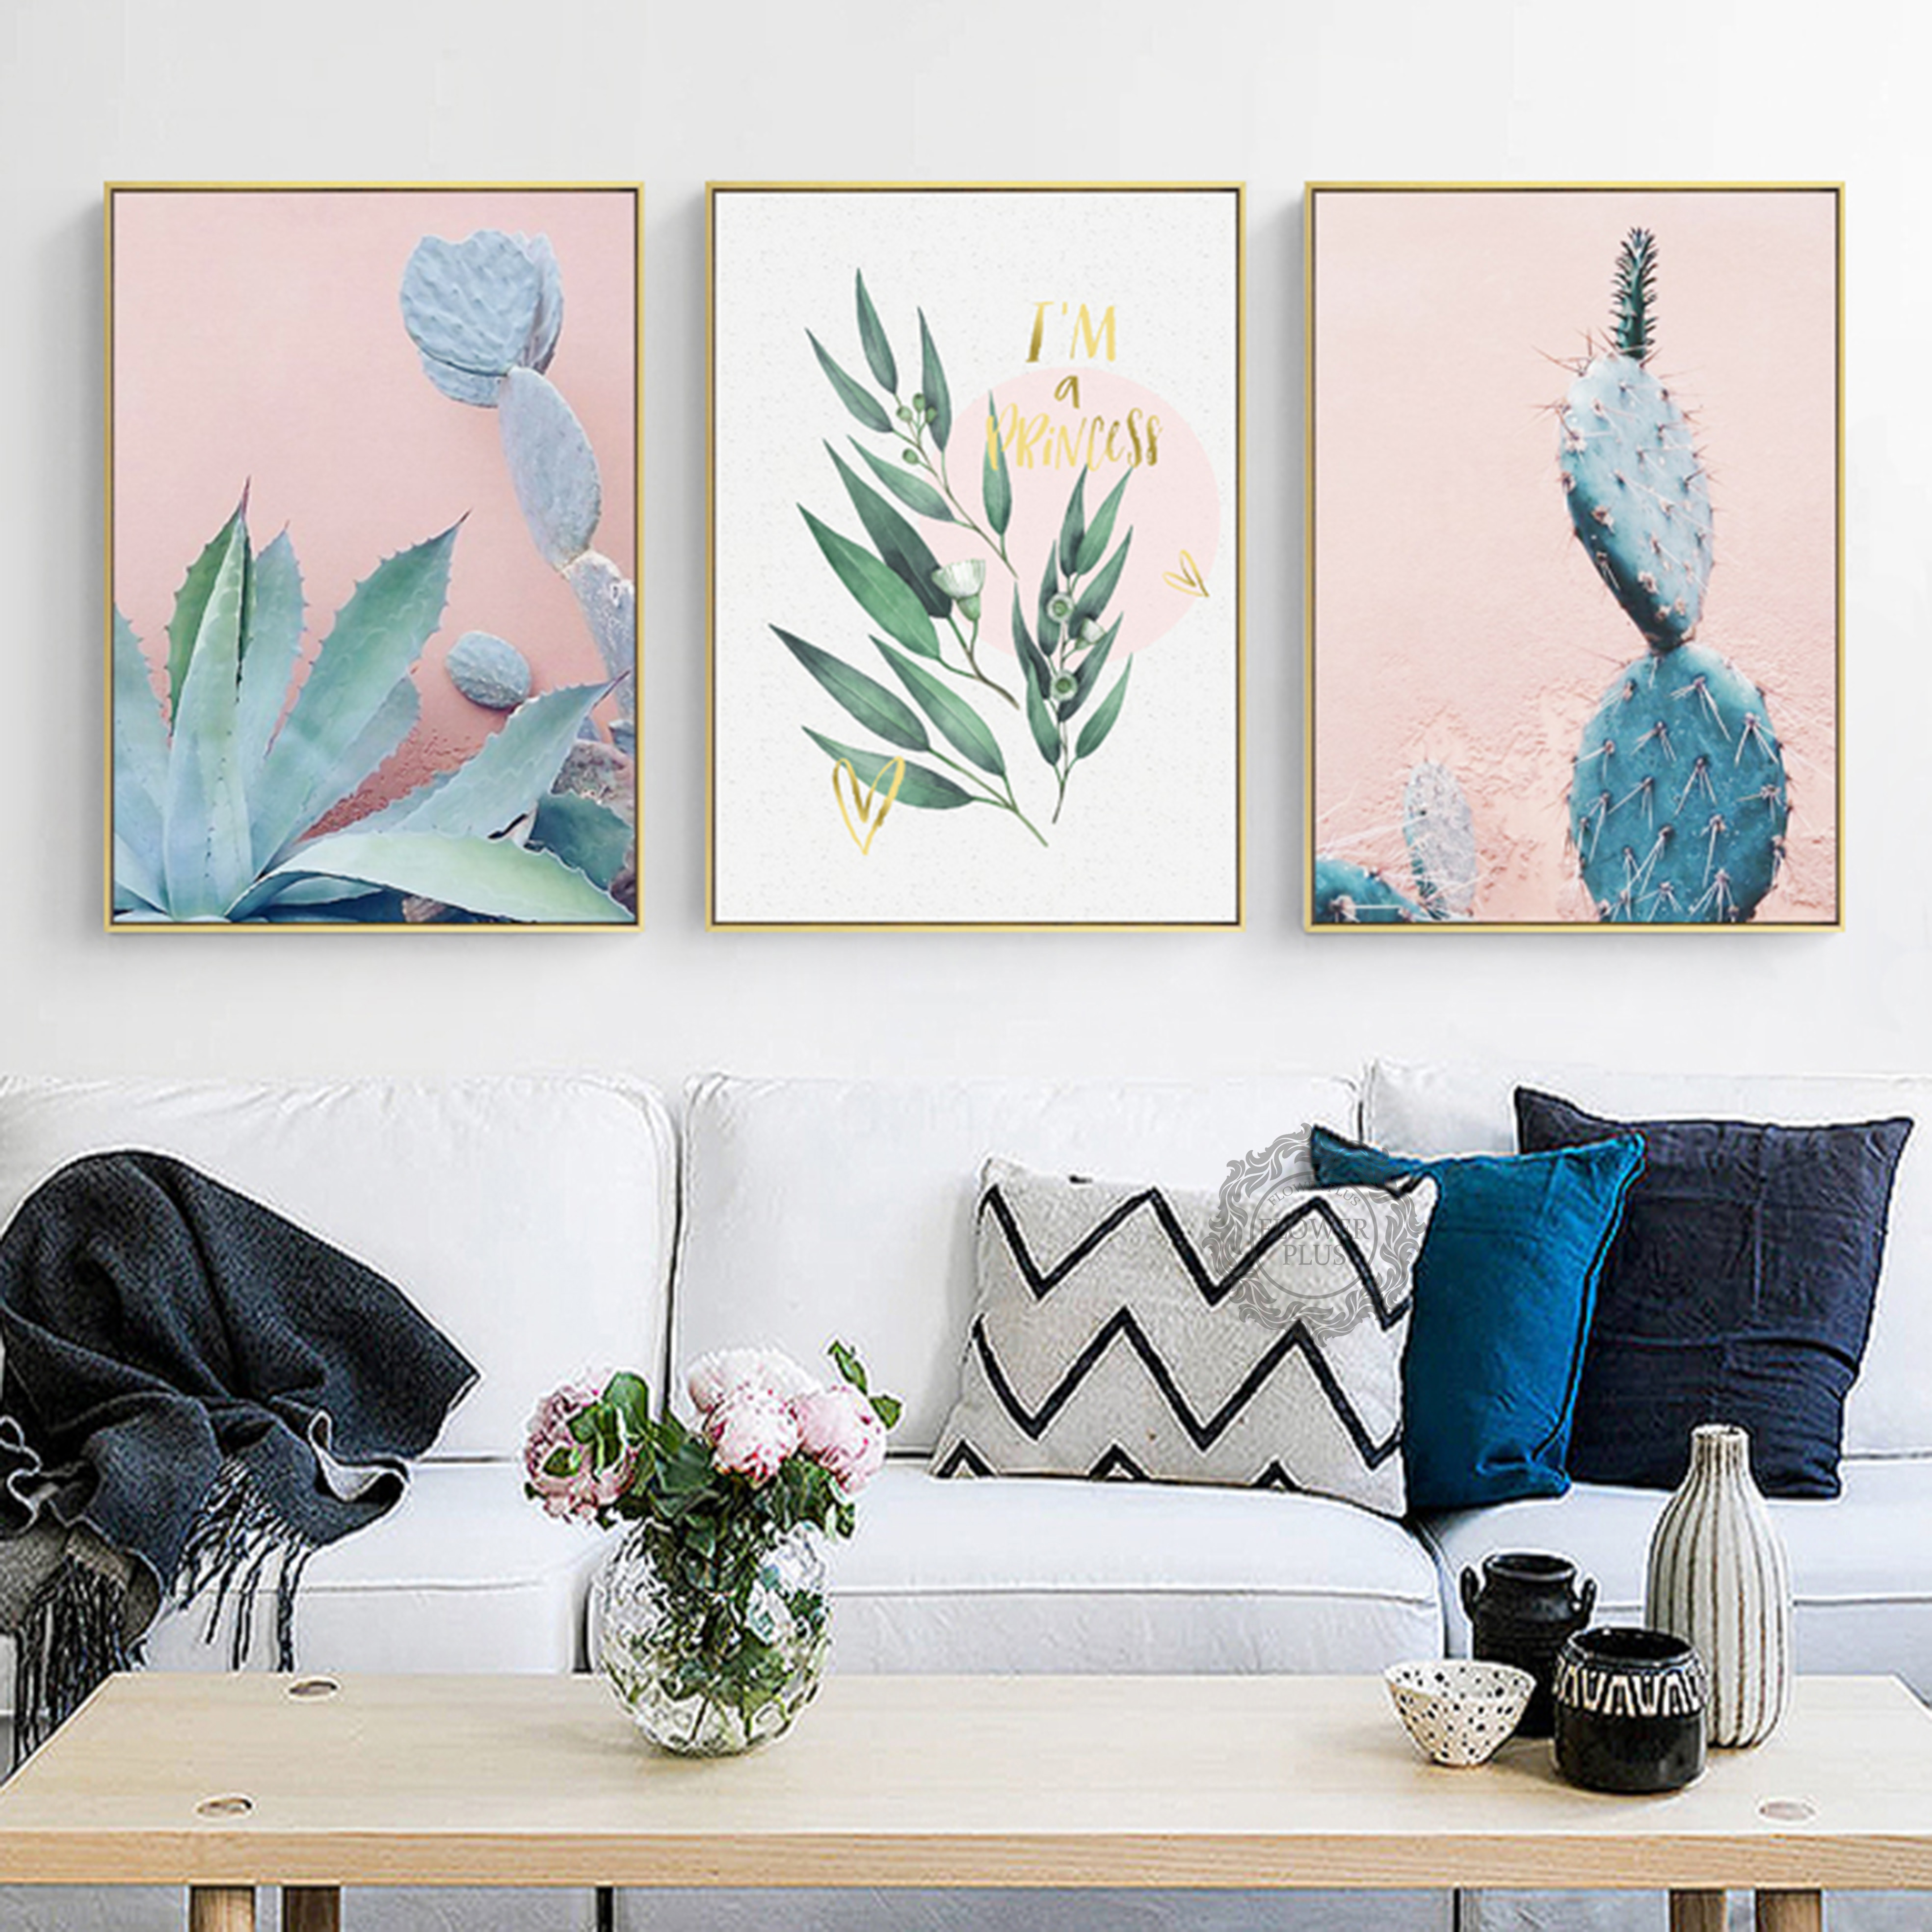 Nordic green plant decoration painting pink home model room cactus leaves hanging wall